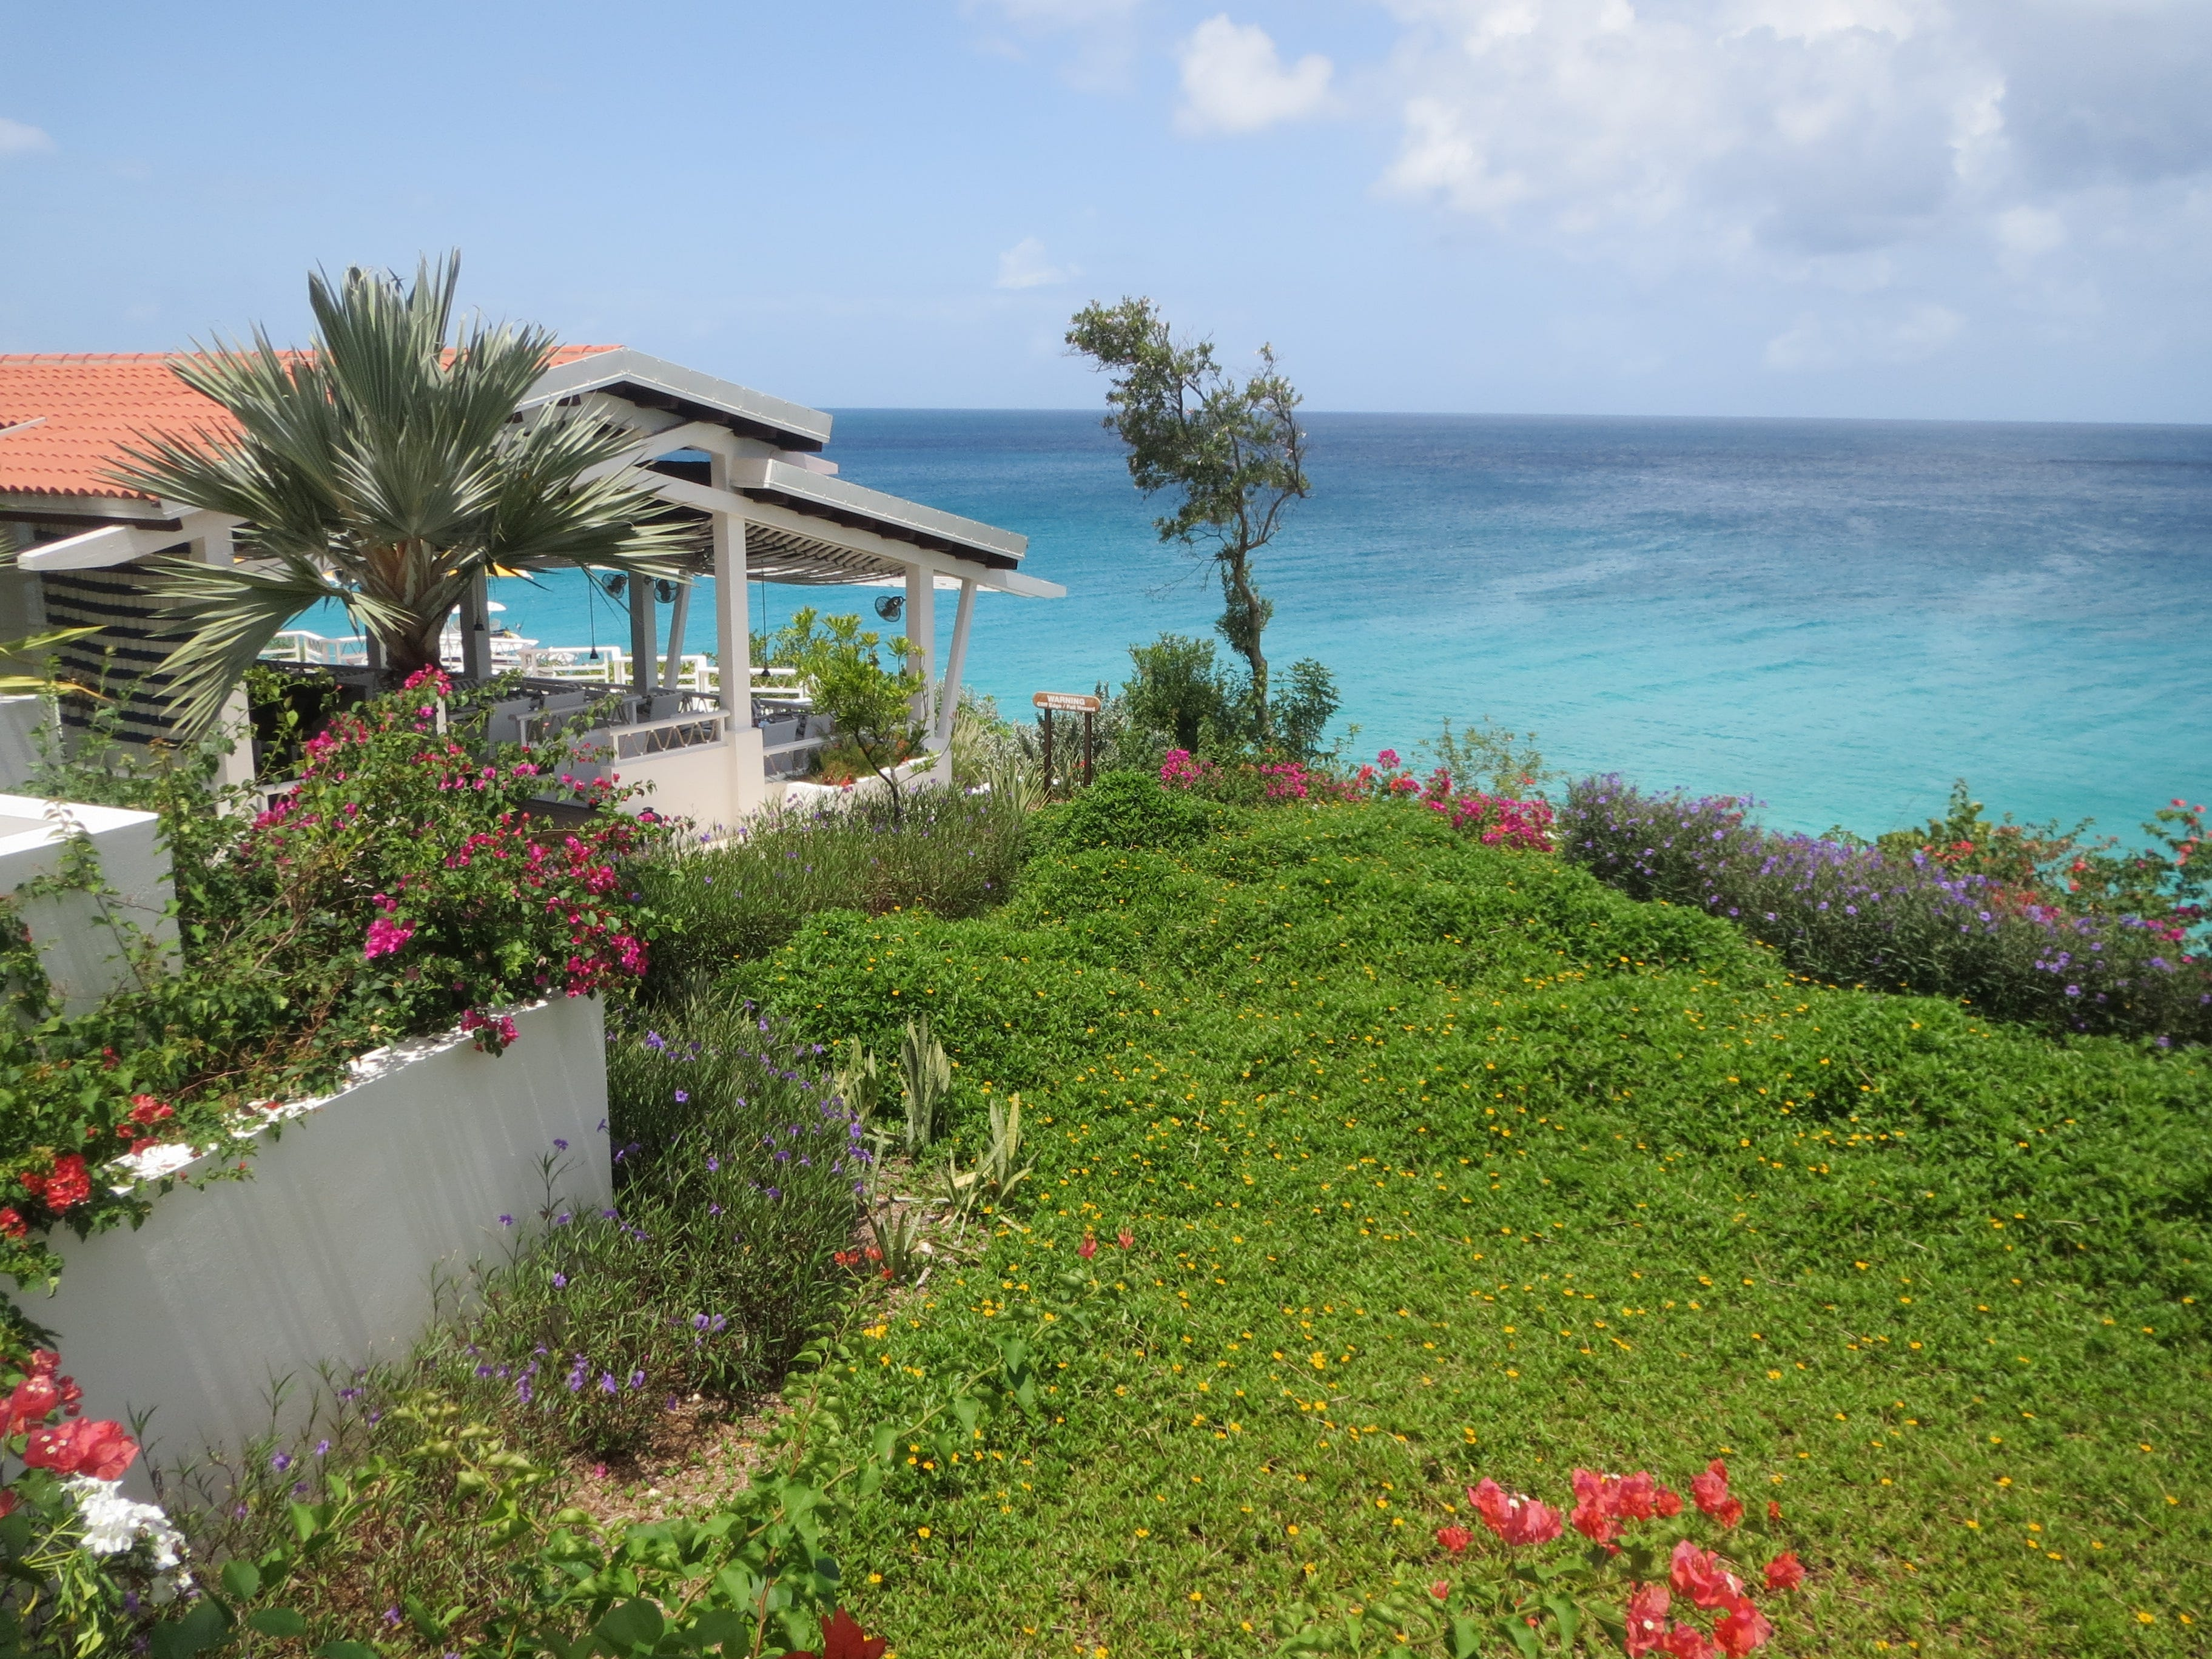 Malliouhana, an Auberge Resort overlooks Meads Bay in Anguilla.